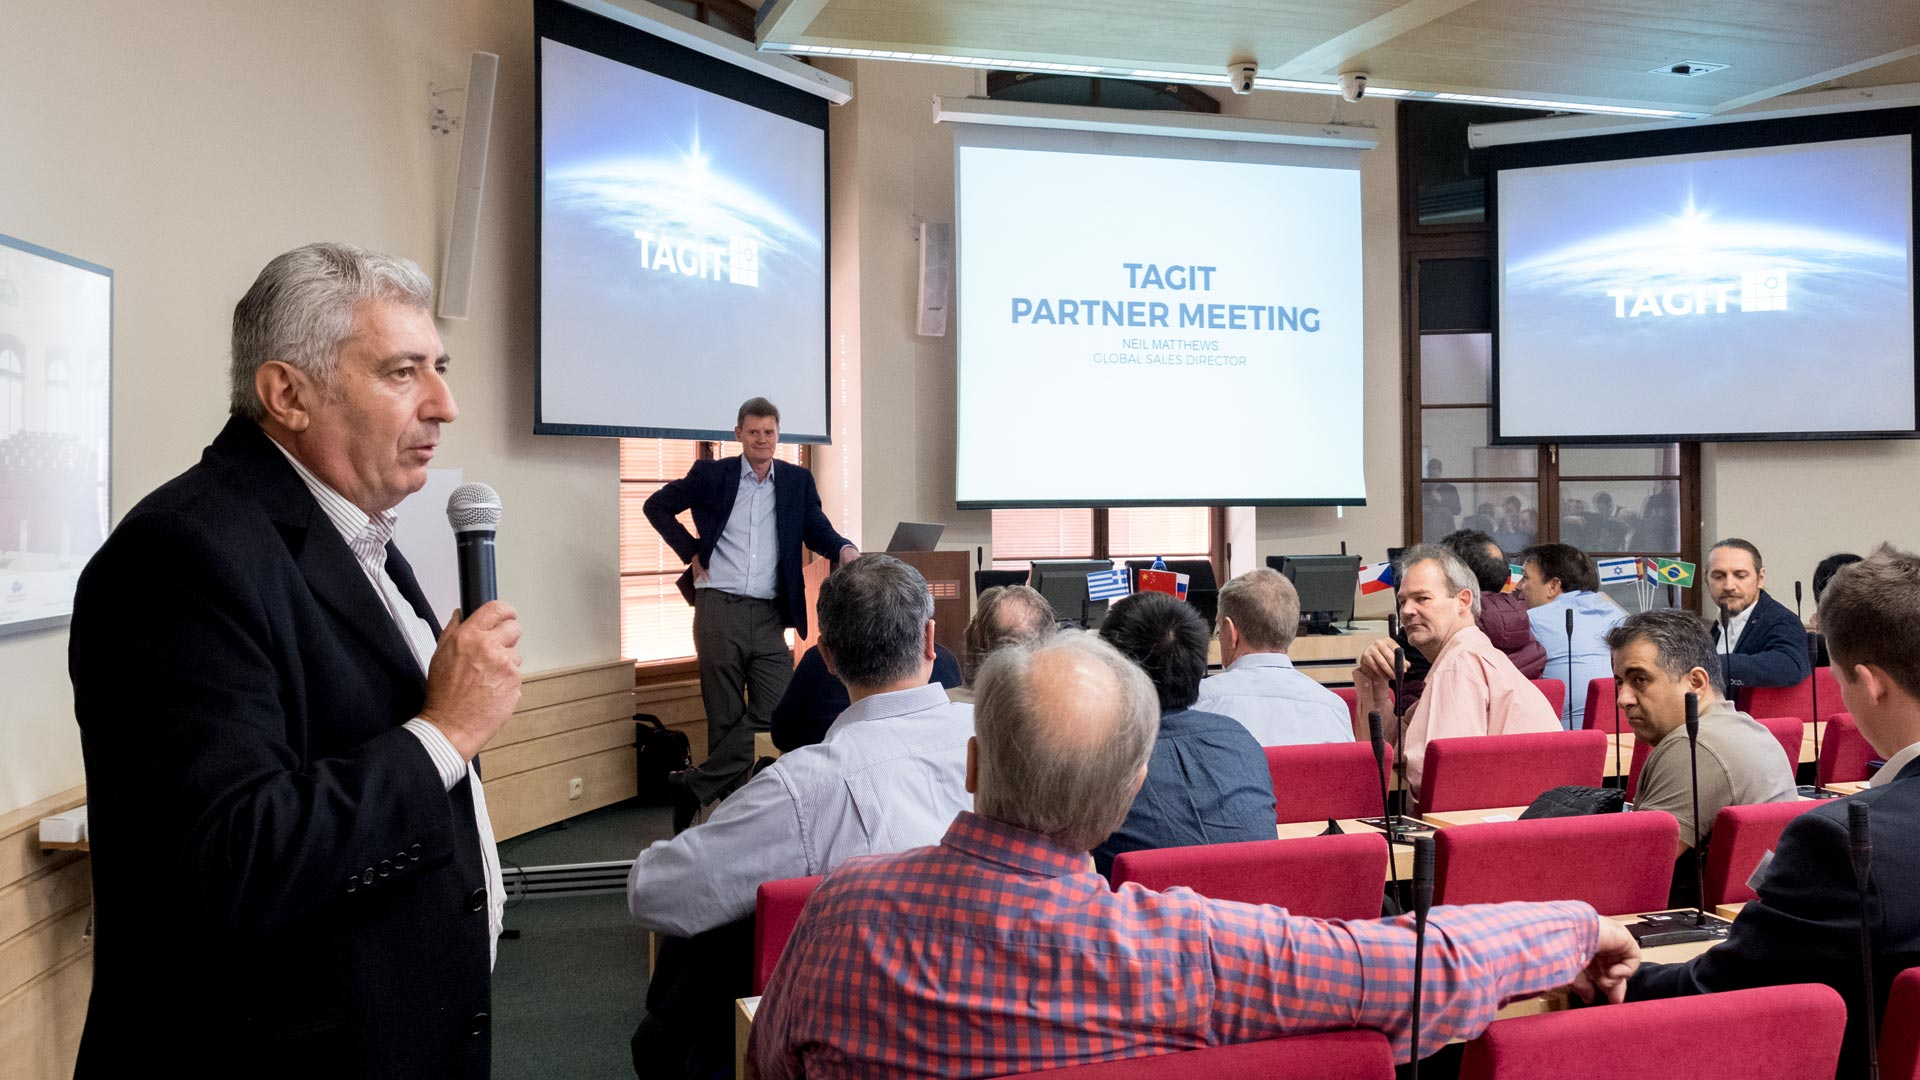 TAGIT CONFERENCE 2018